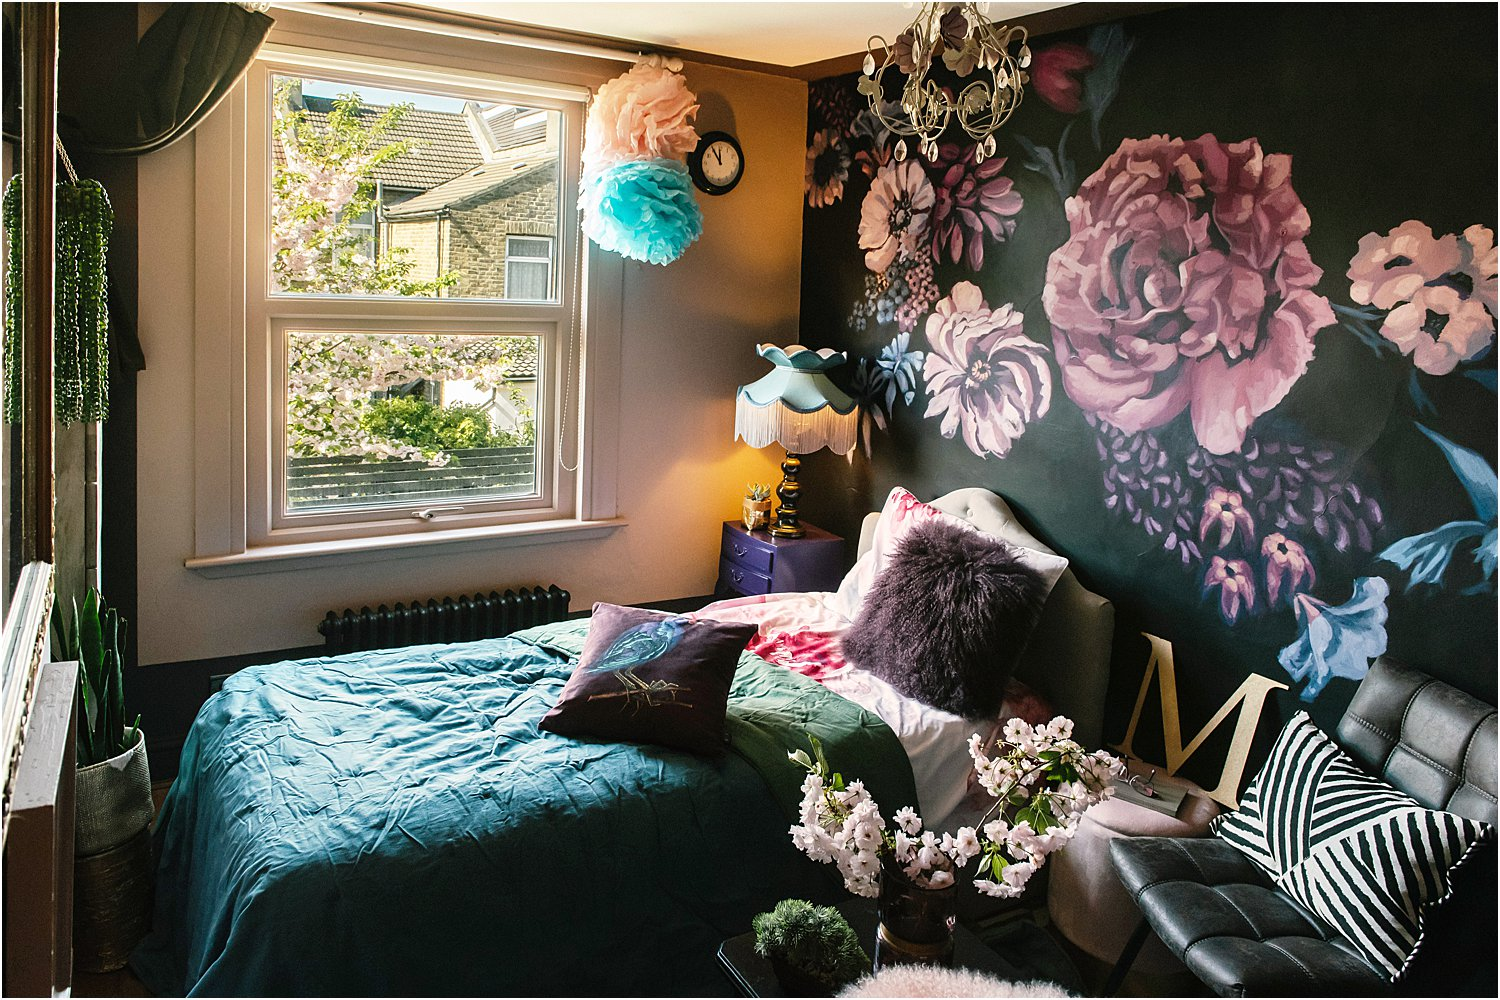 hand-painted-floral-mural-bedroom-nature-dark-eclectic-maximalist-interiors-lily-sawyer-layered-home